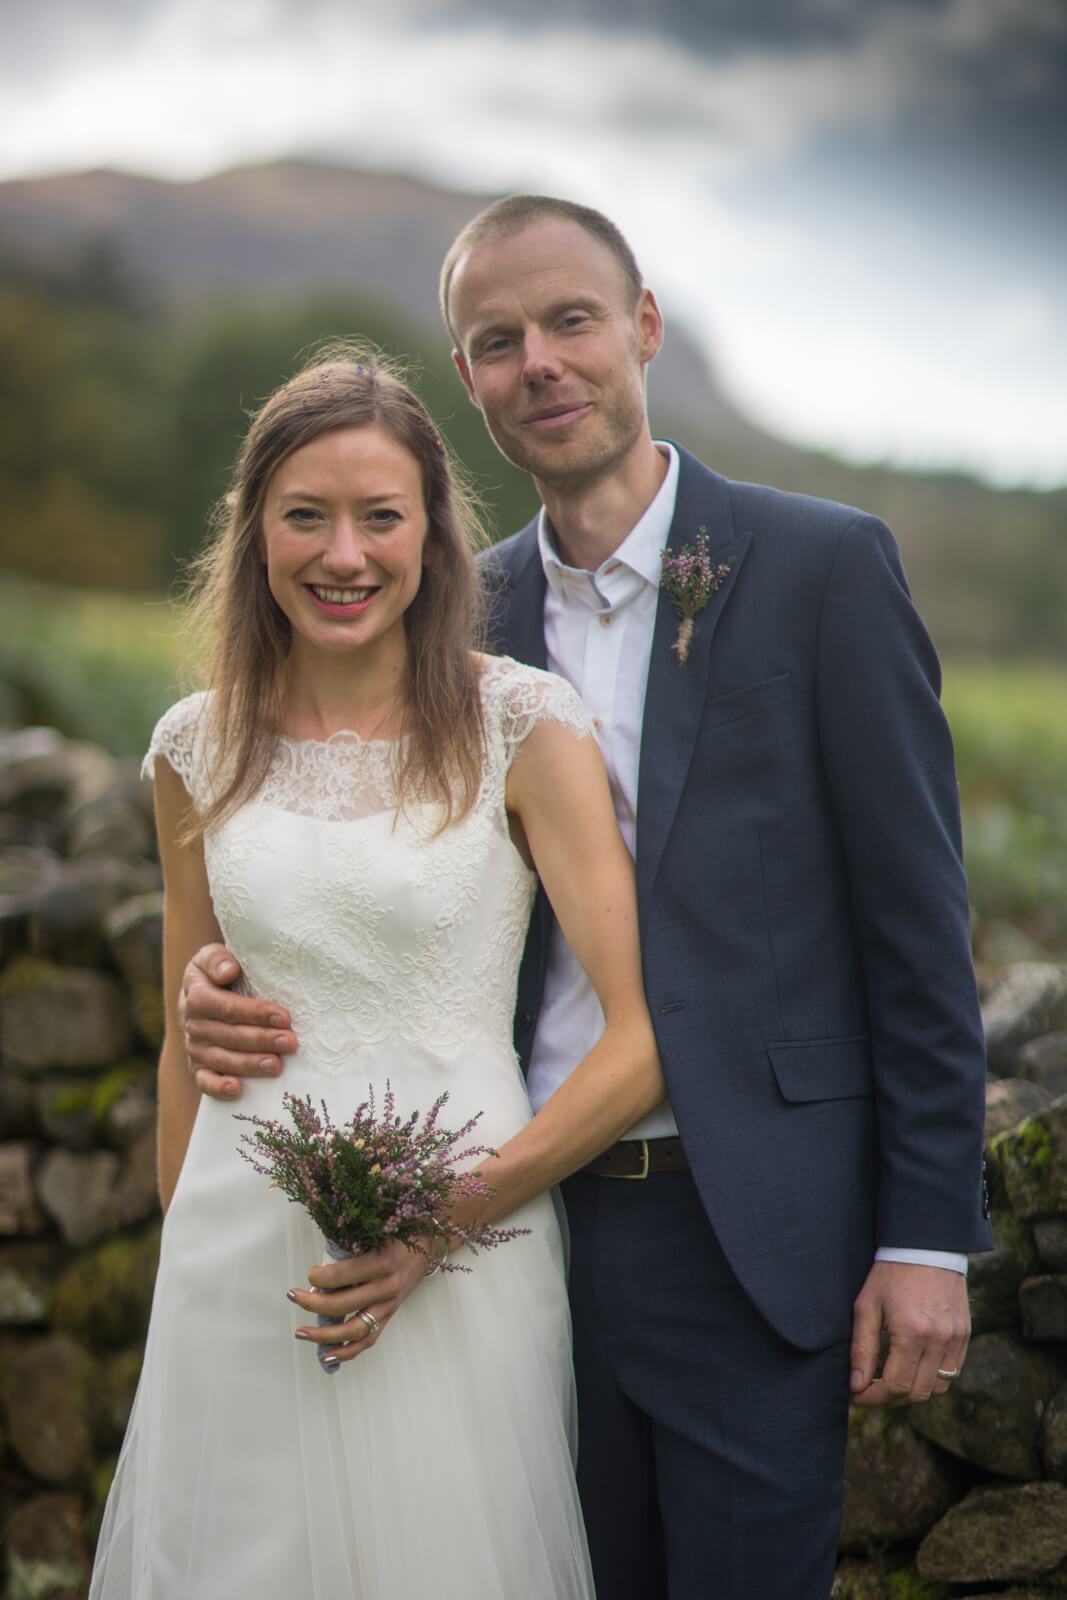 Bride and groom infront of mountains and dry stone wall